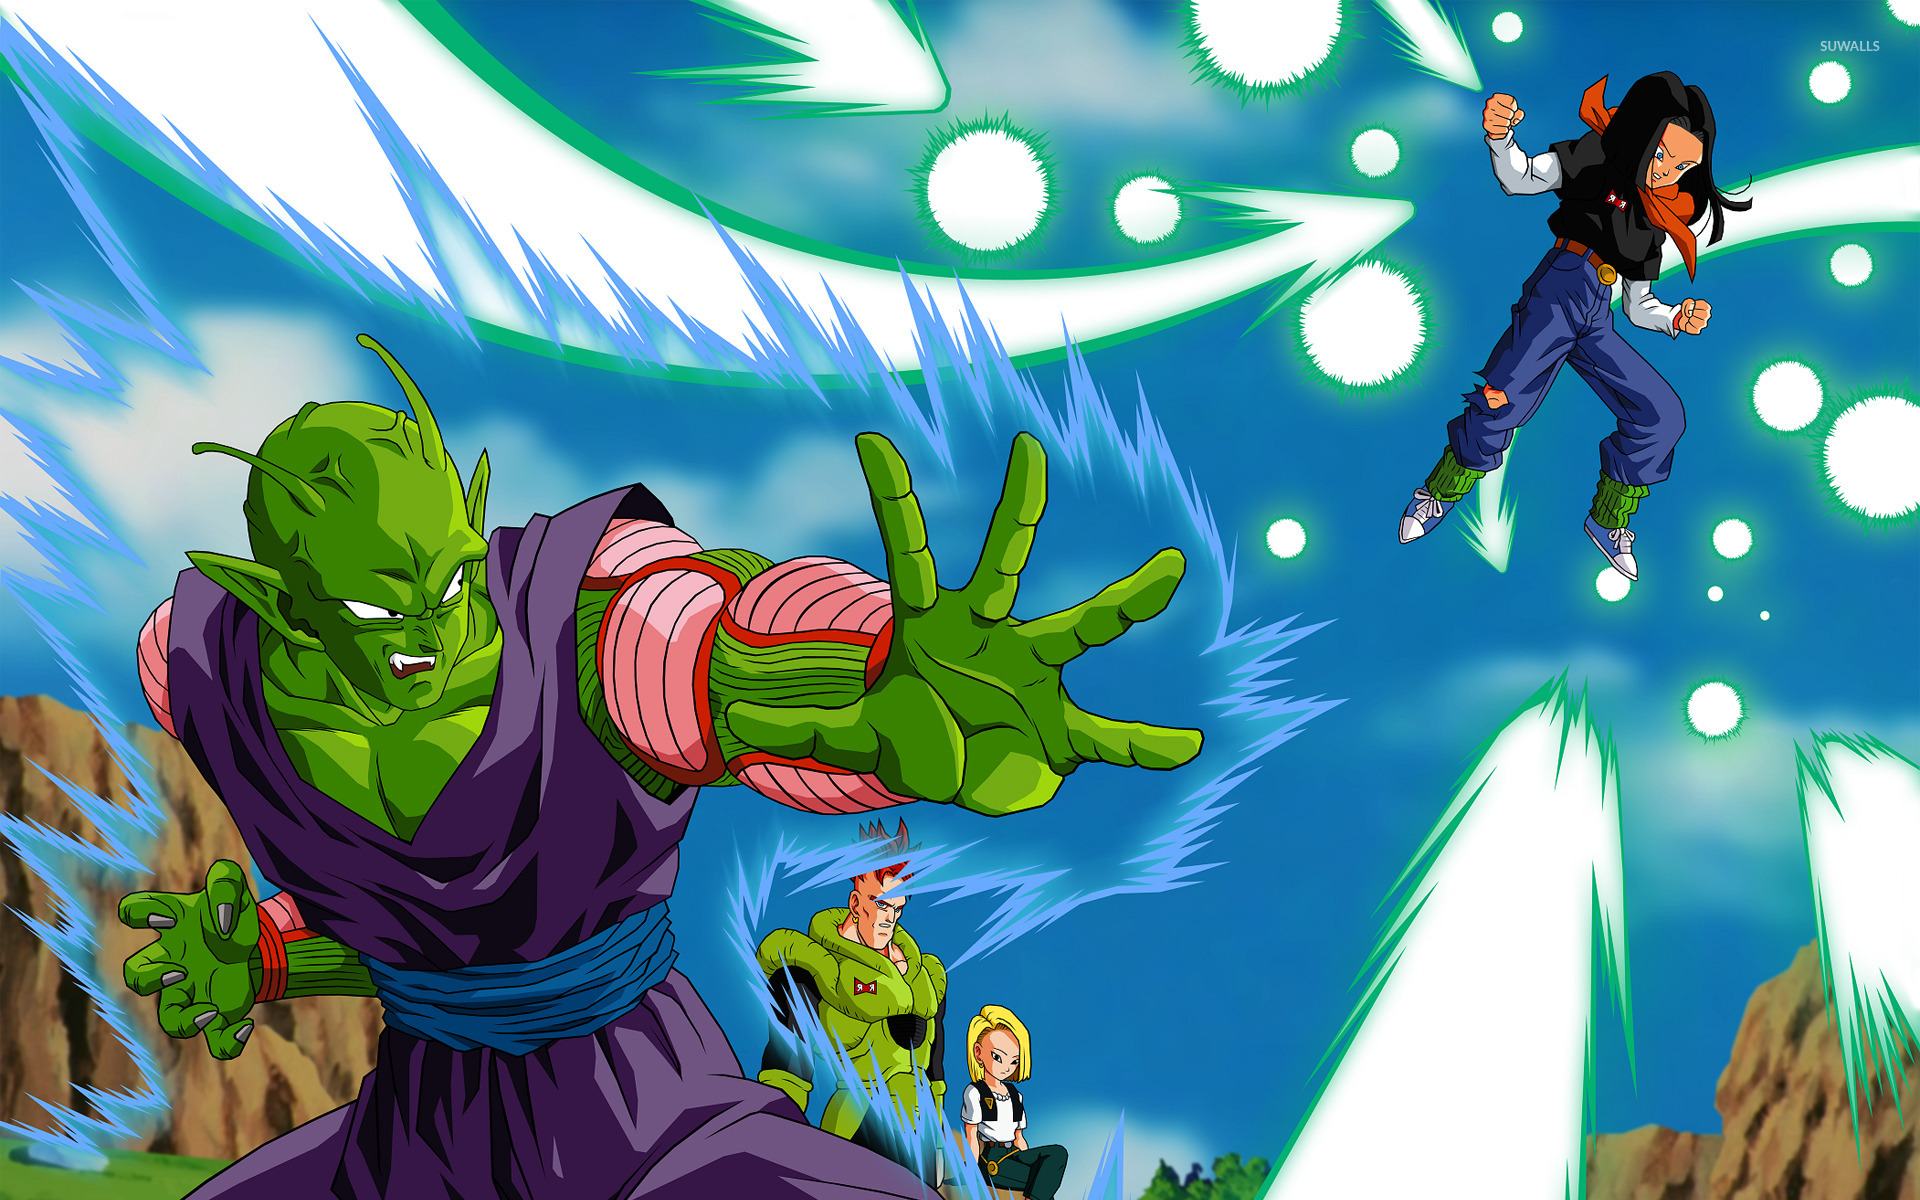 Dragon Ball Z 9 Wallpaper Anime Wallpapers 15405